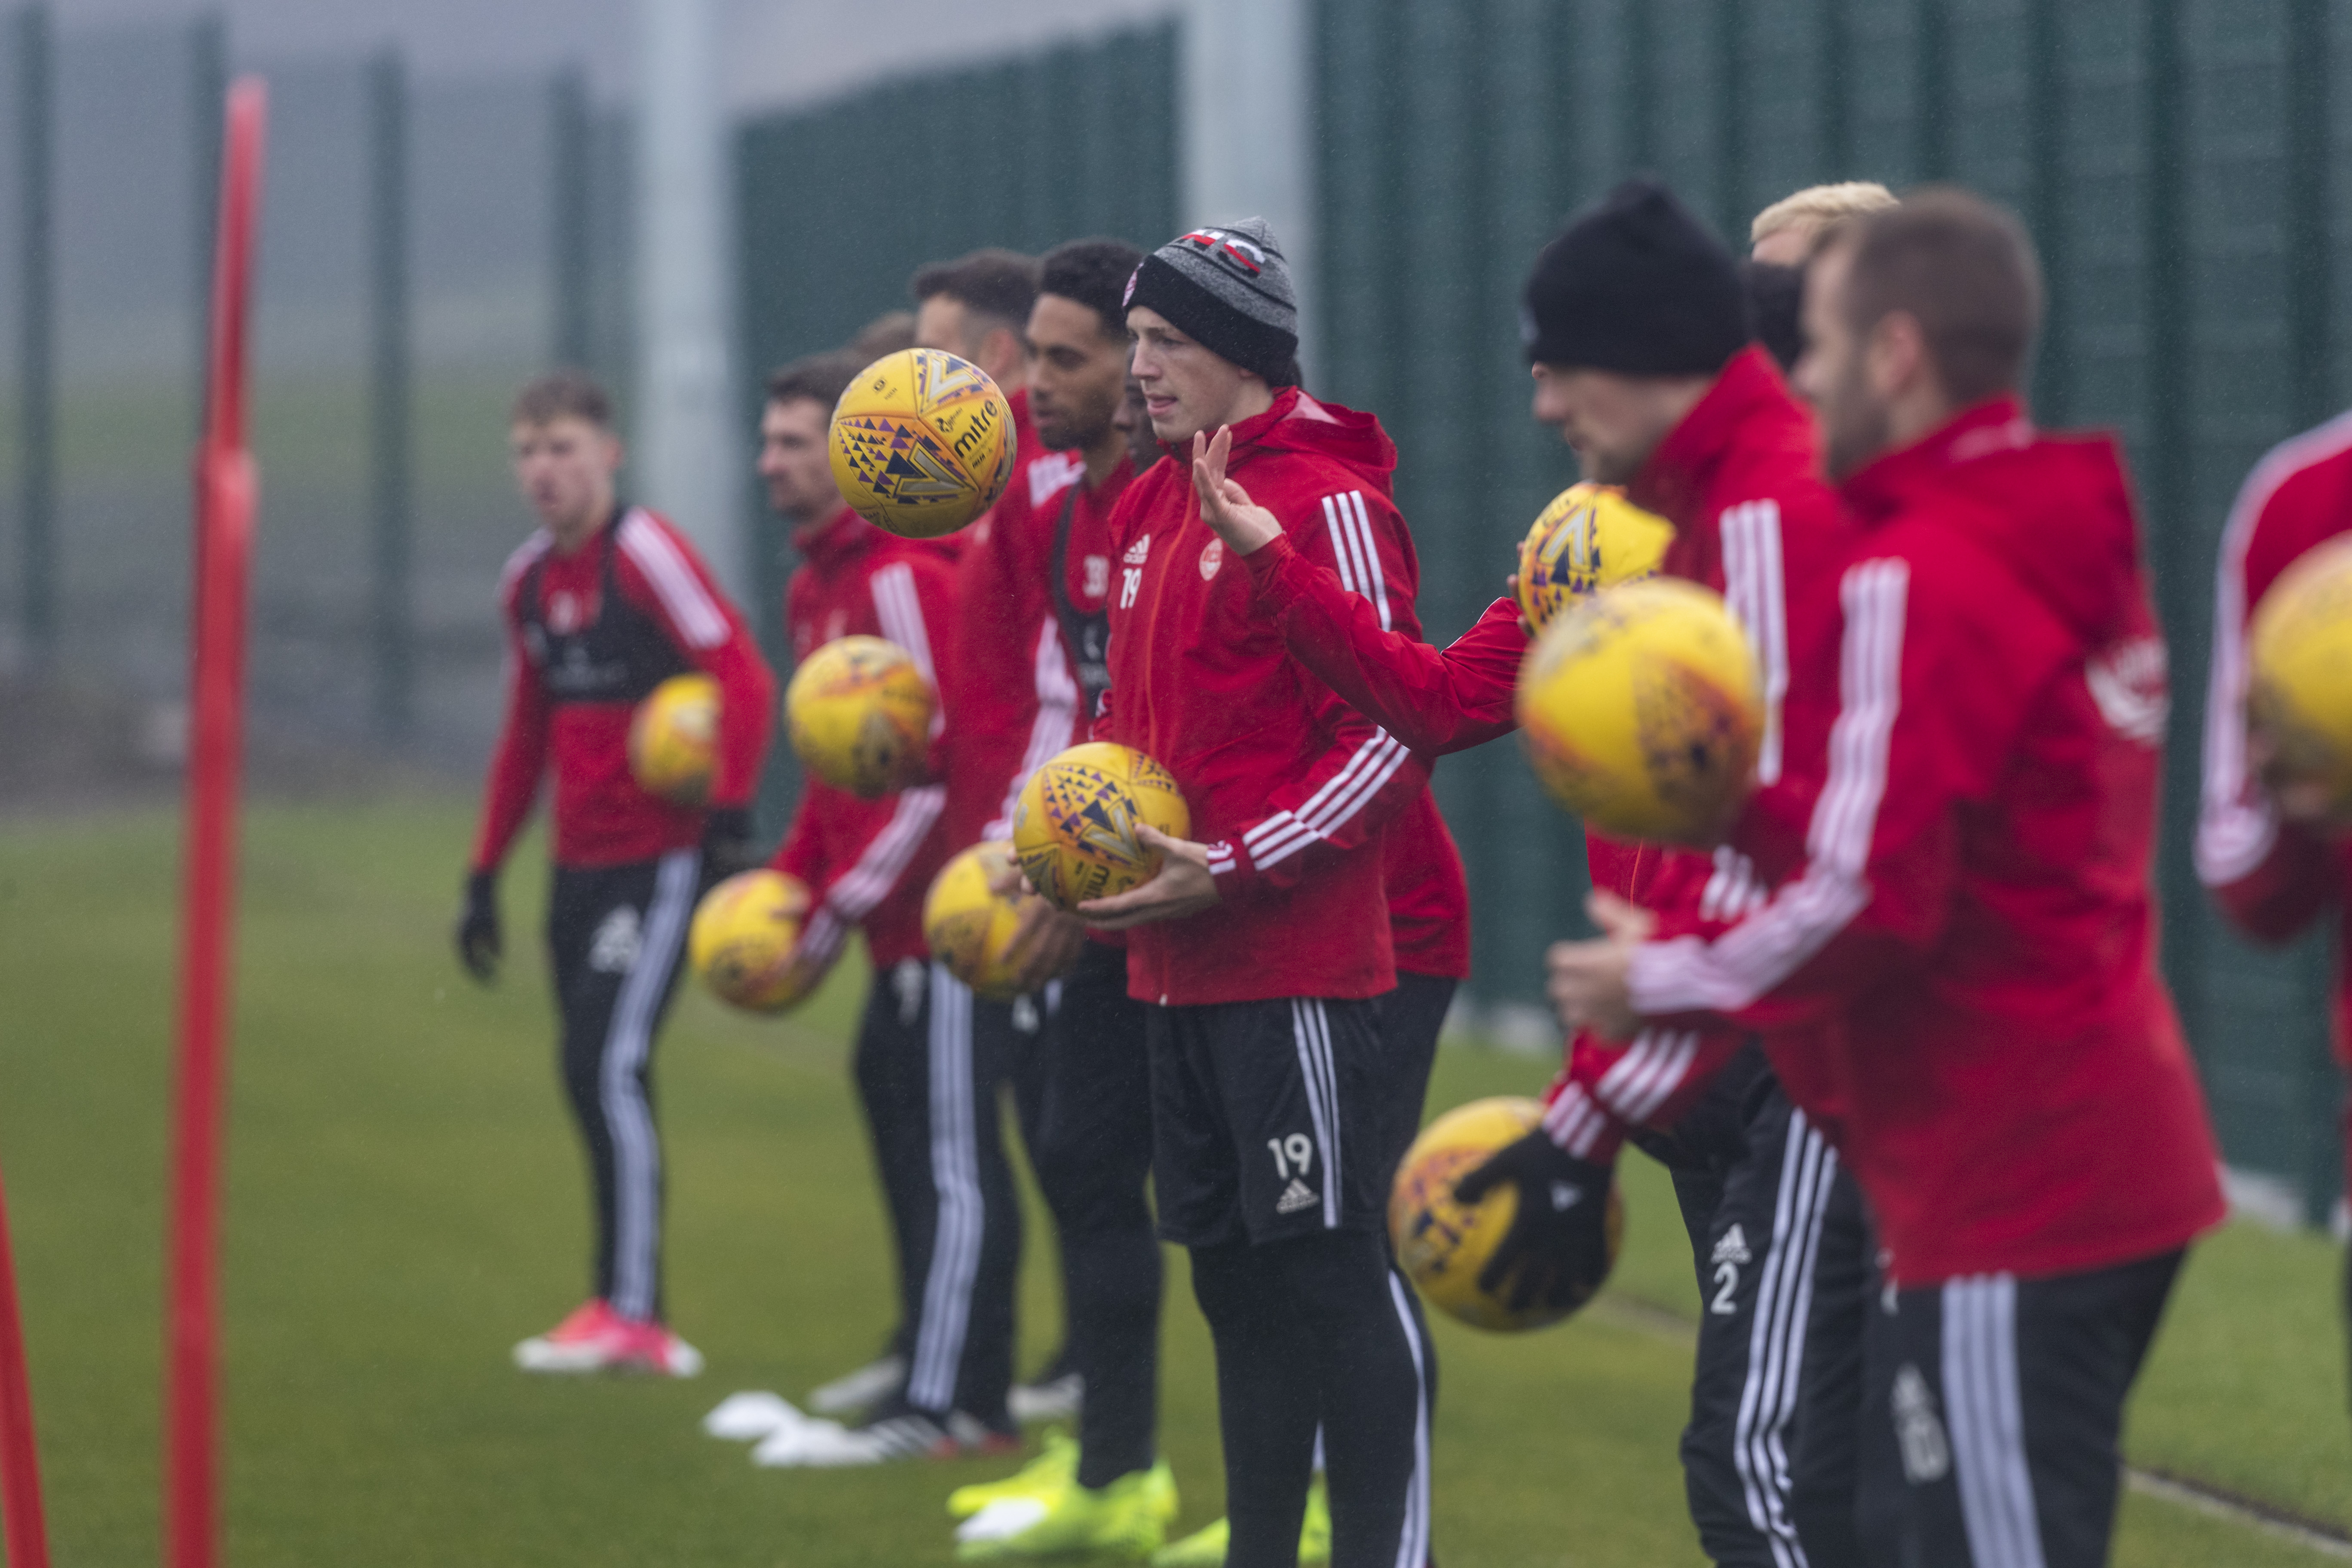 Aberdeen training at Cormack Park earlier in the season.